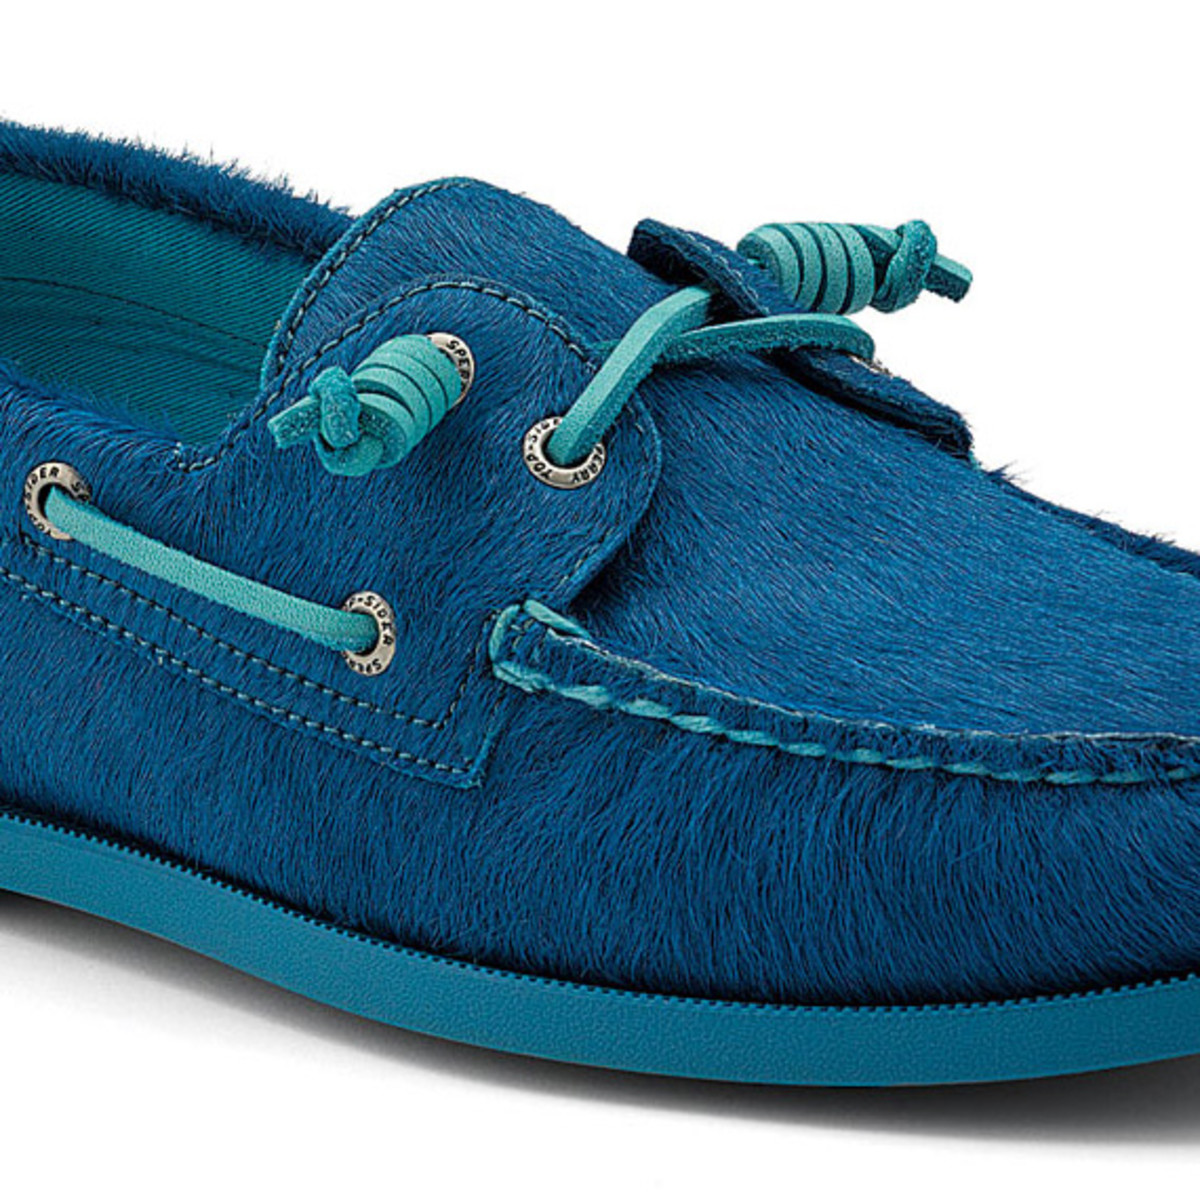 jeffrey-x-sperry-top-sider-authentic-original-barrel-lace-boat-shoes-03